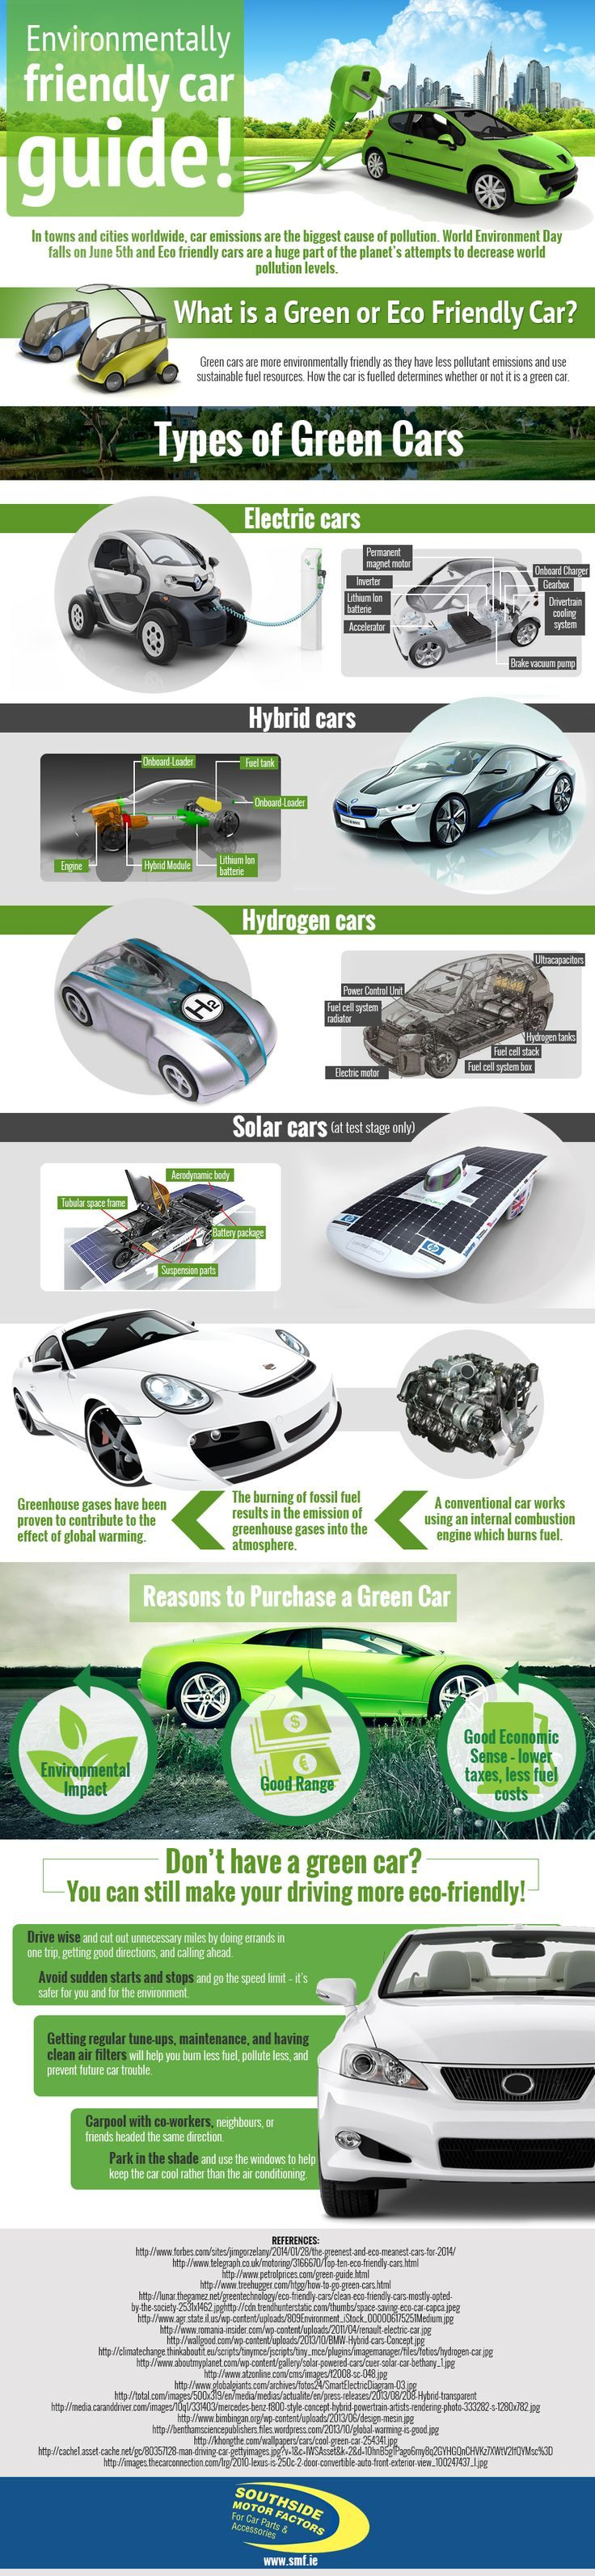 environmentally friendly car guide infographic